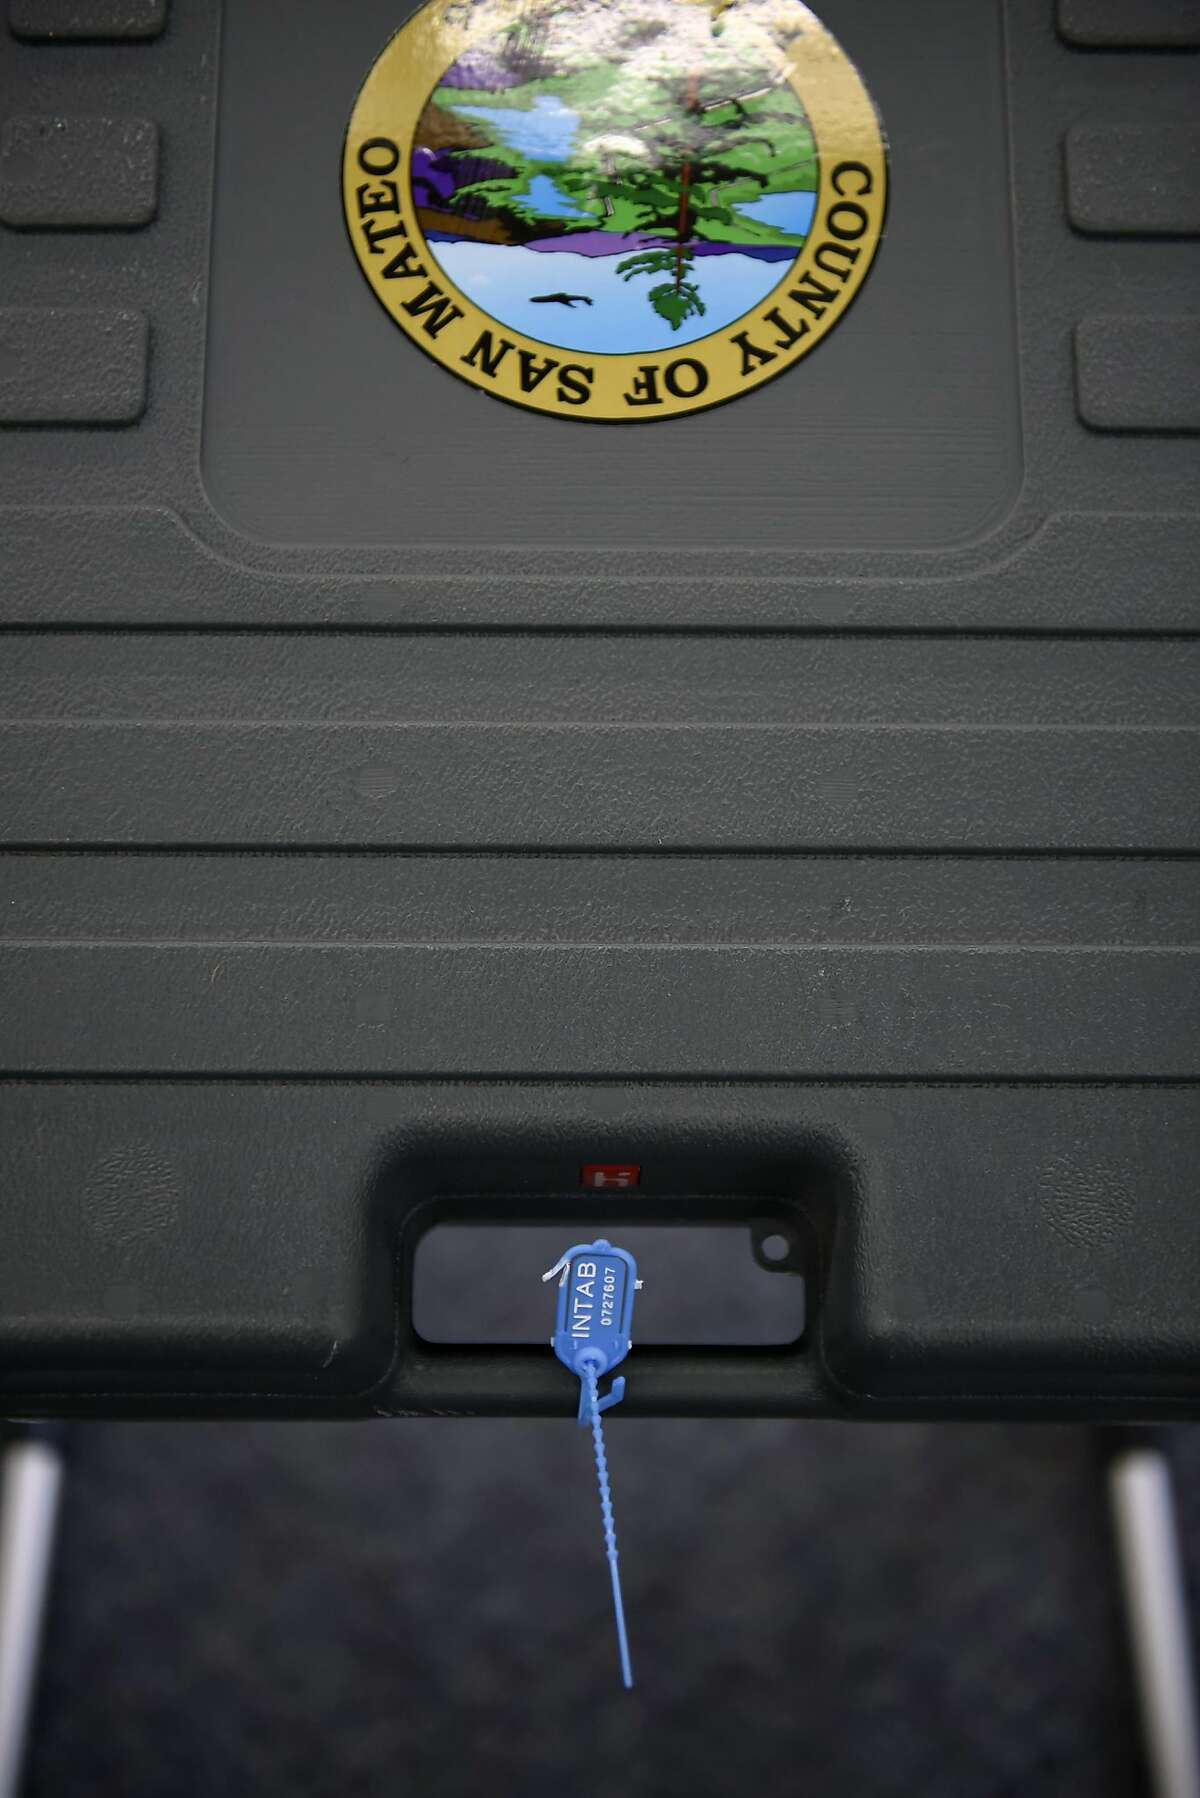 A seal is seen on the handle of a tested Hart Intercivic eSlate voting machines in a room at the San Mateo County Registration & Elections Division building in San Mateo, CA, on Wednesday May 2, 2018.